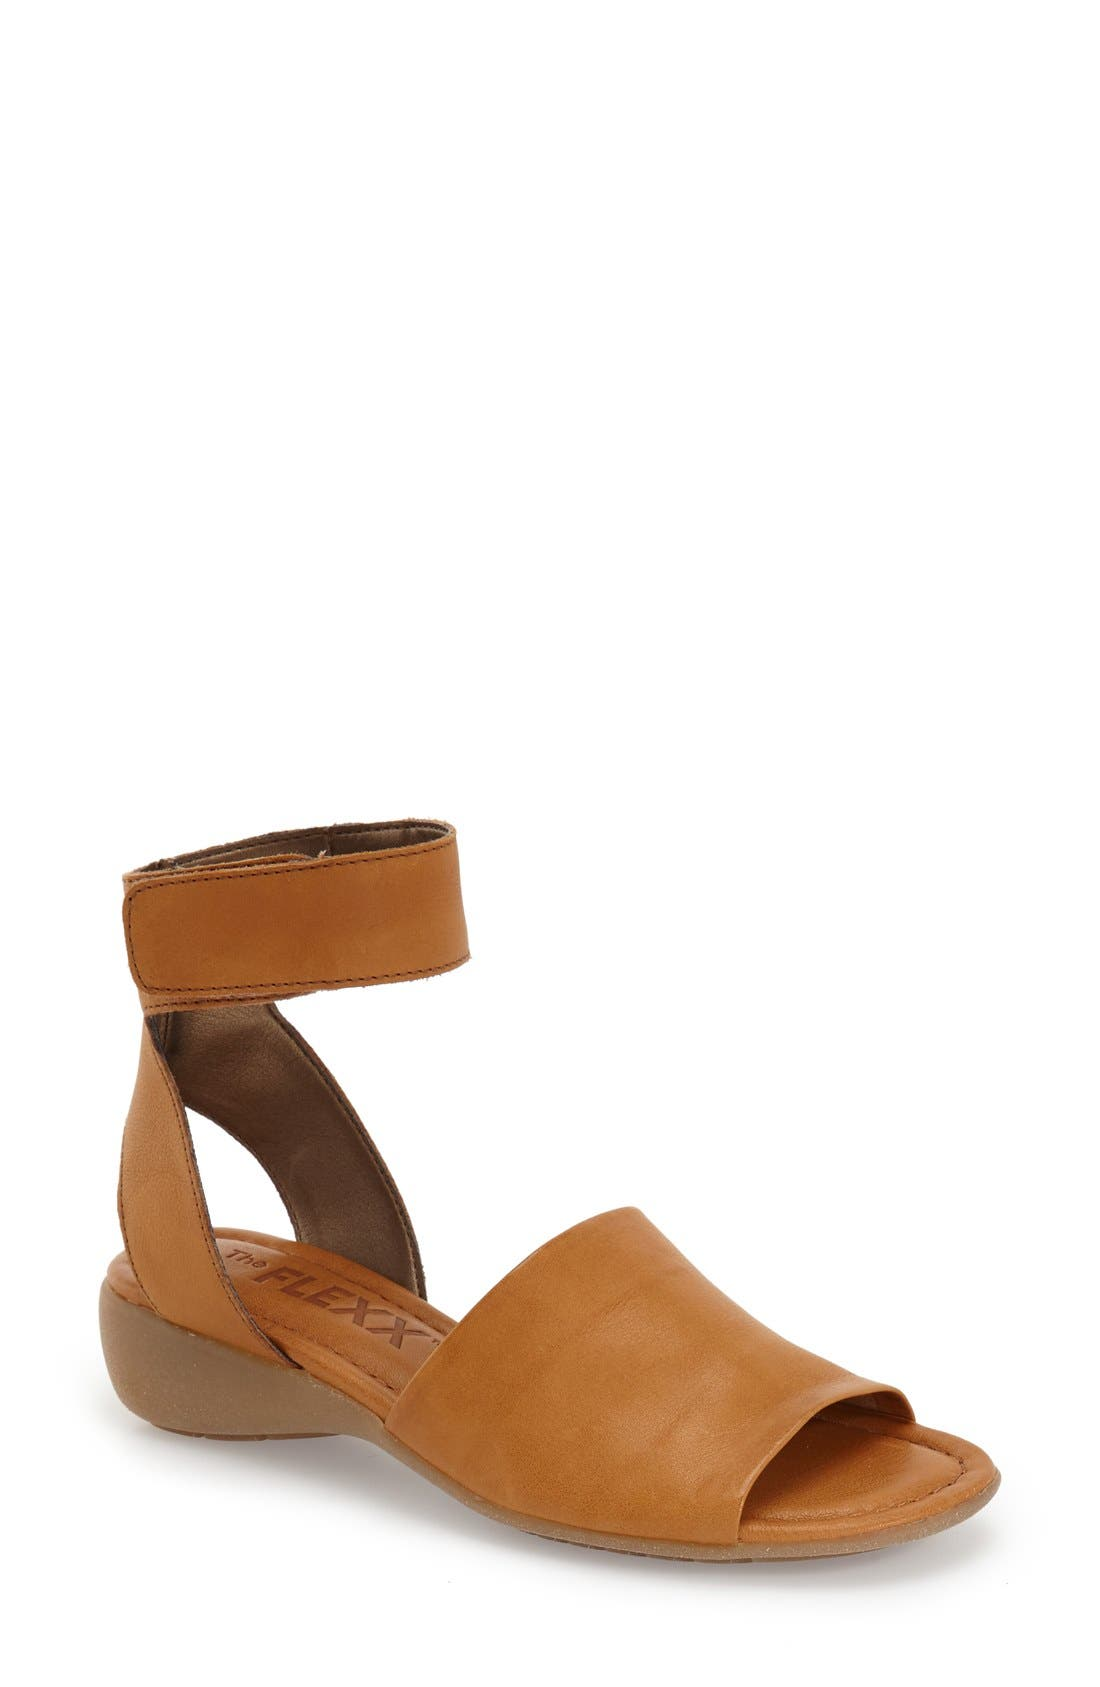 'Beglad' Leather Ankle Strap Sandal,                         Main,                         color, Virginia Brown Leather